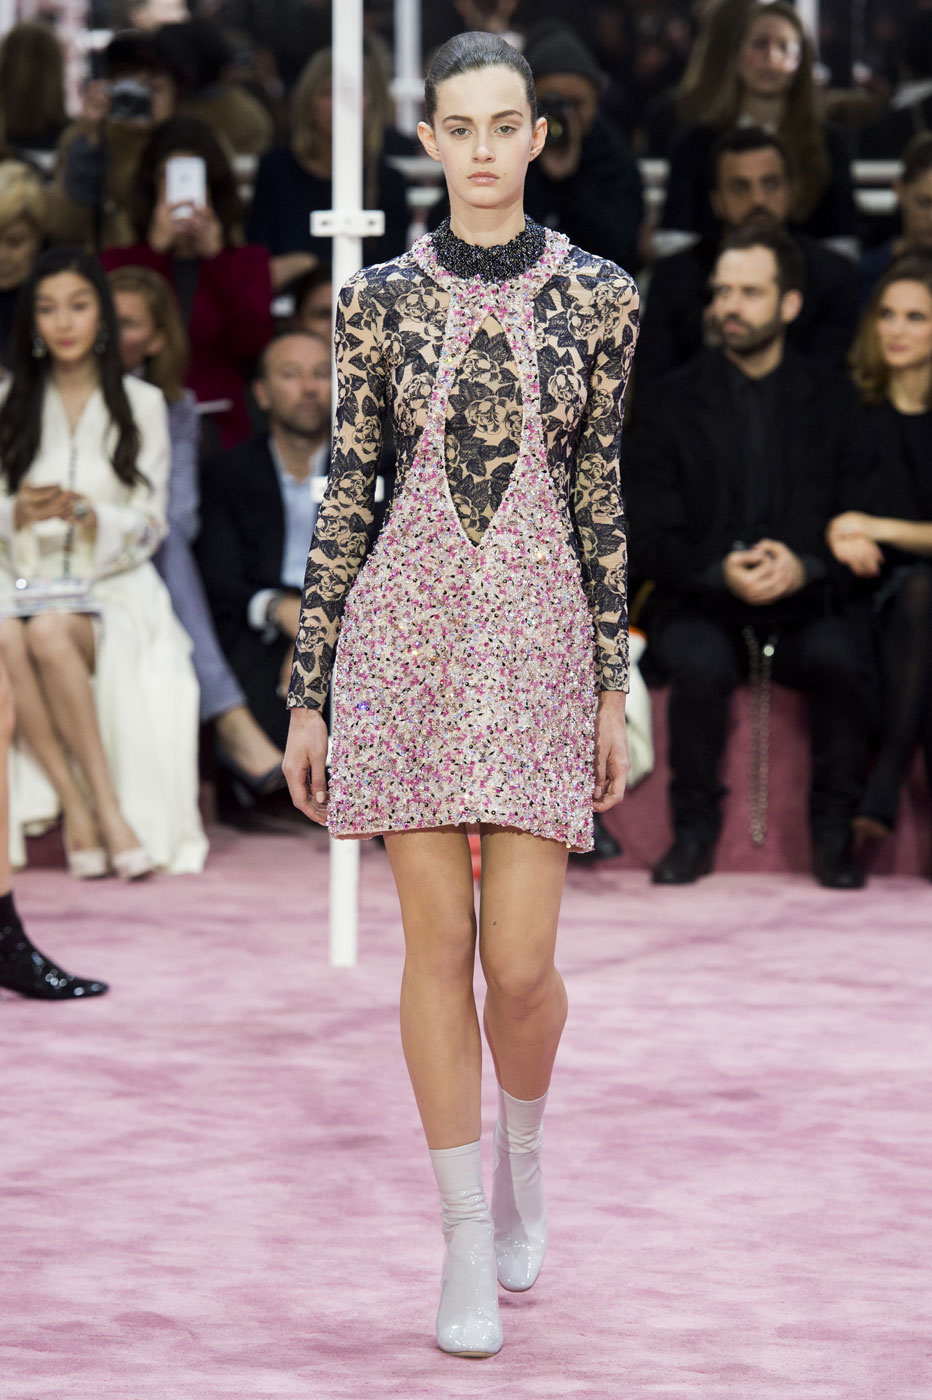 Christian-Dior-fashion-runway-show-haute-couture-paris-spring-summer-2015-the-impression-053